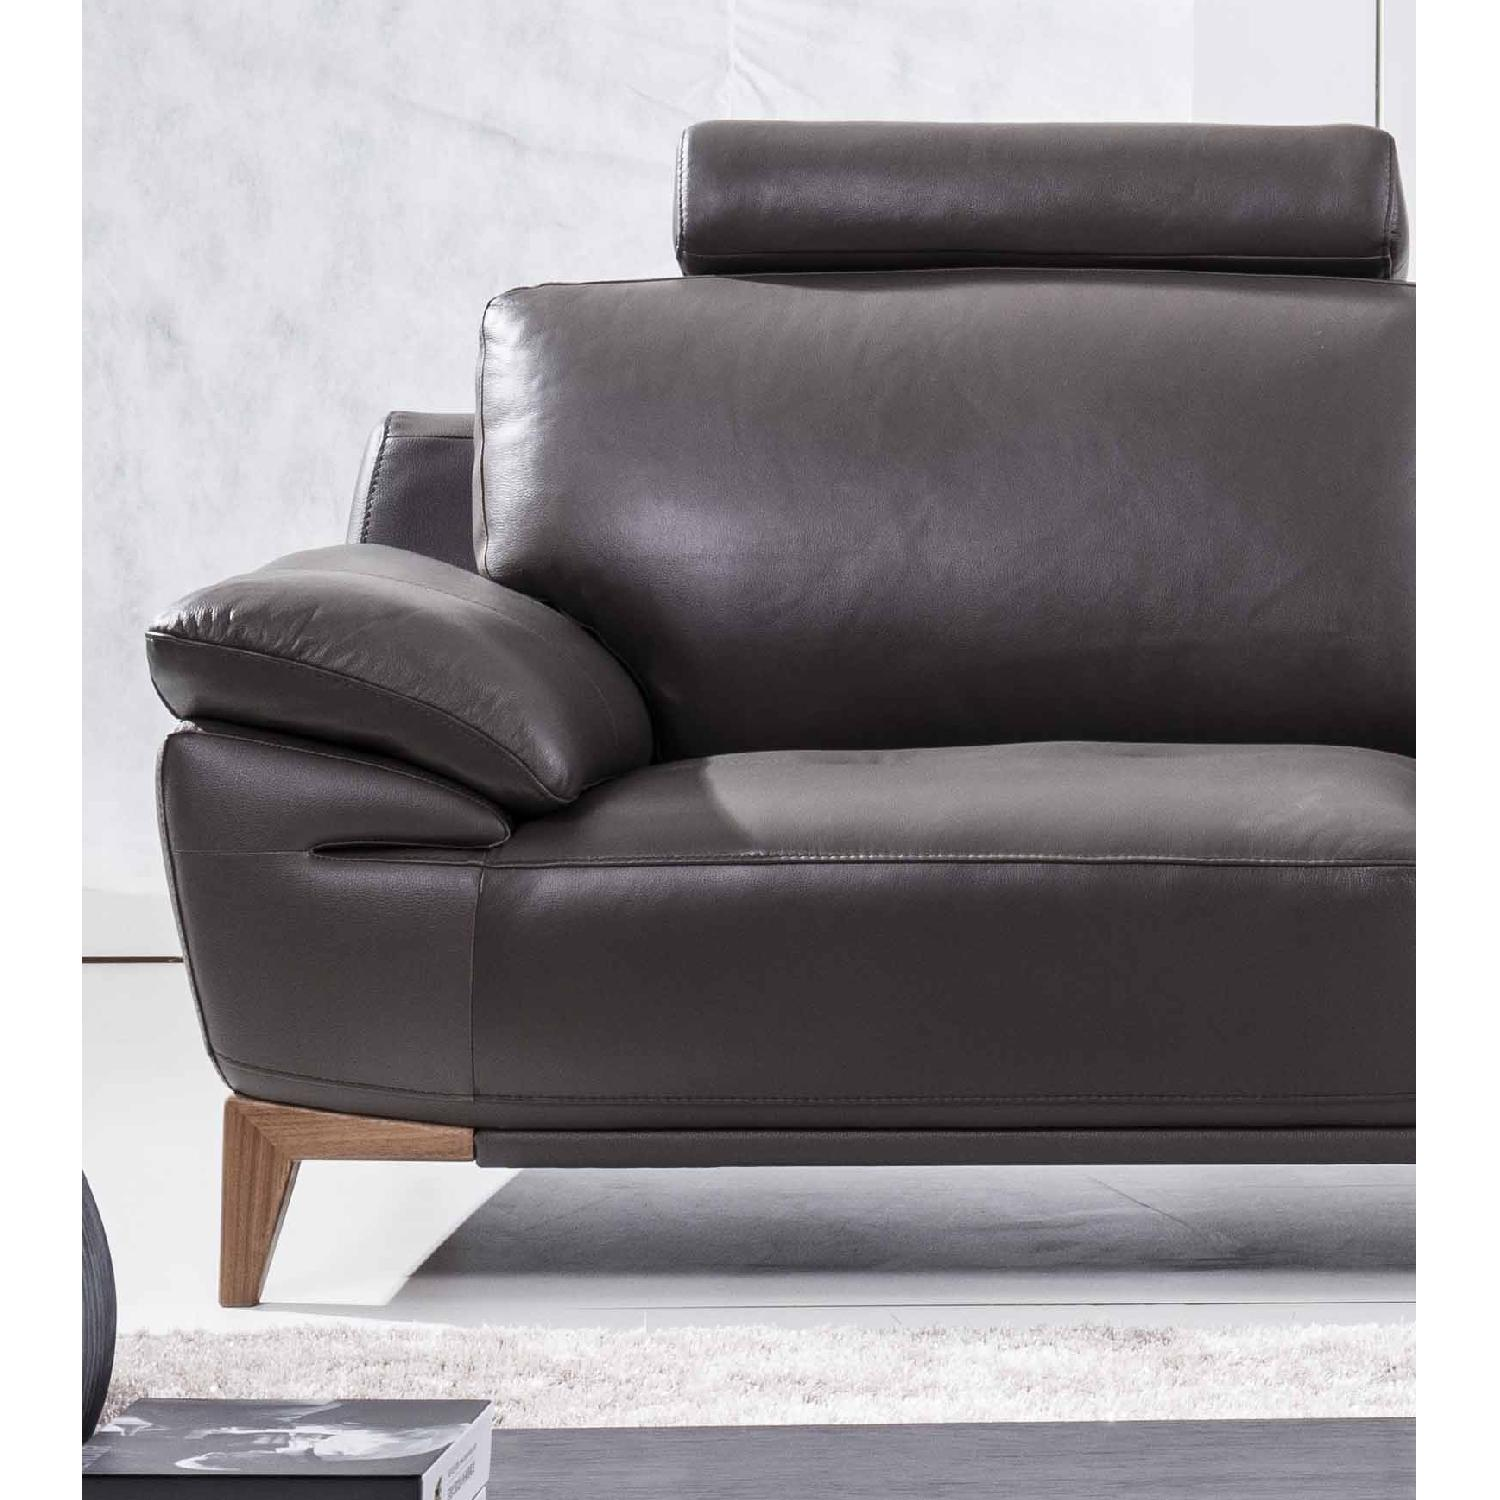 Mid Century Style Sofa With An Adjustable Headrest In Dark Grey Genuine Leather